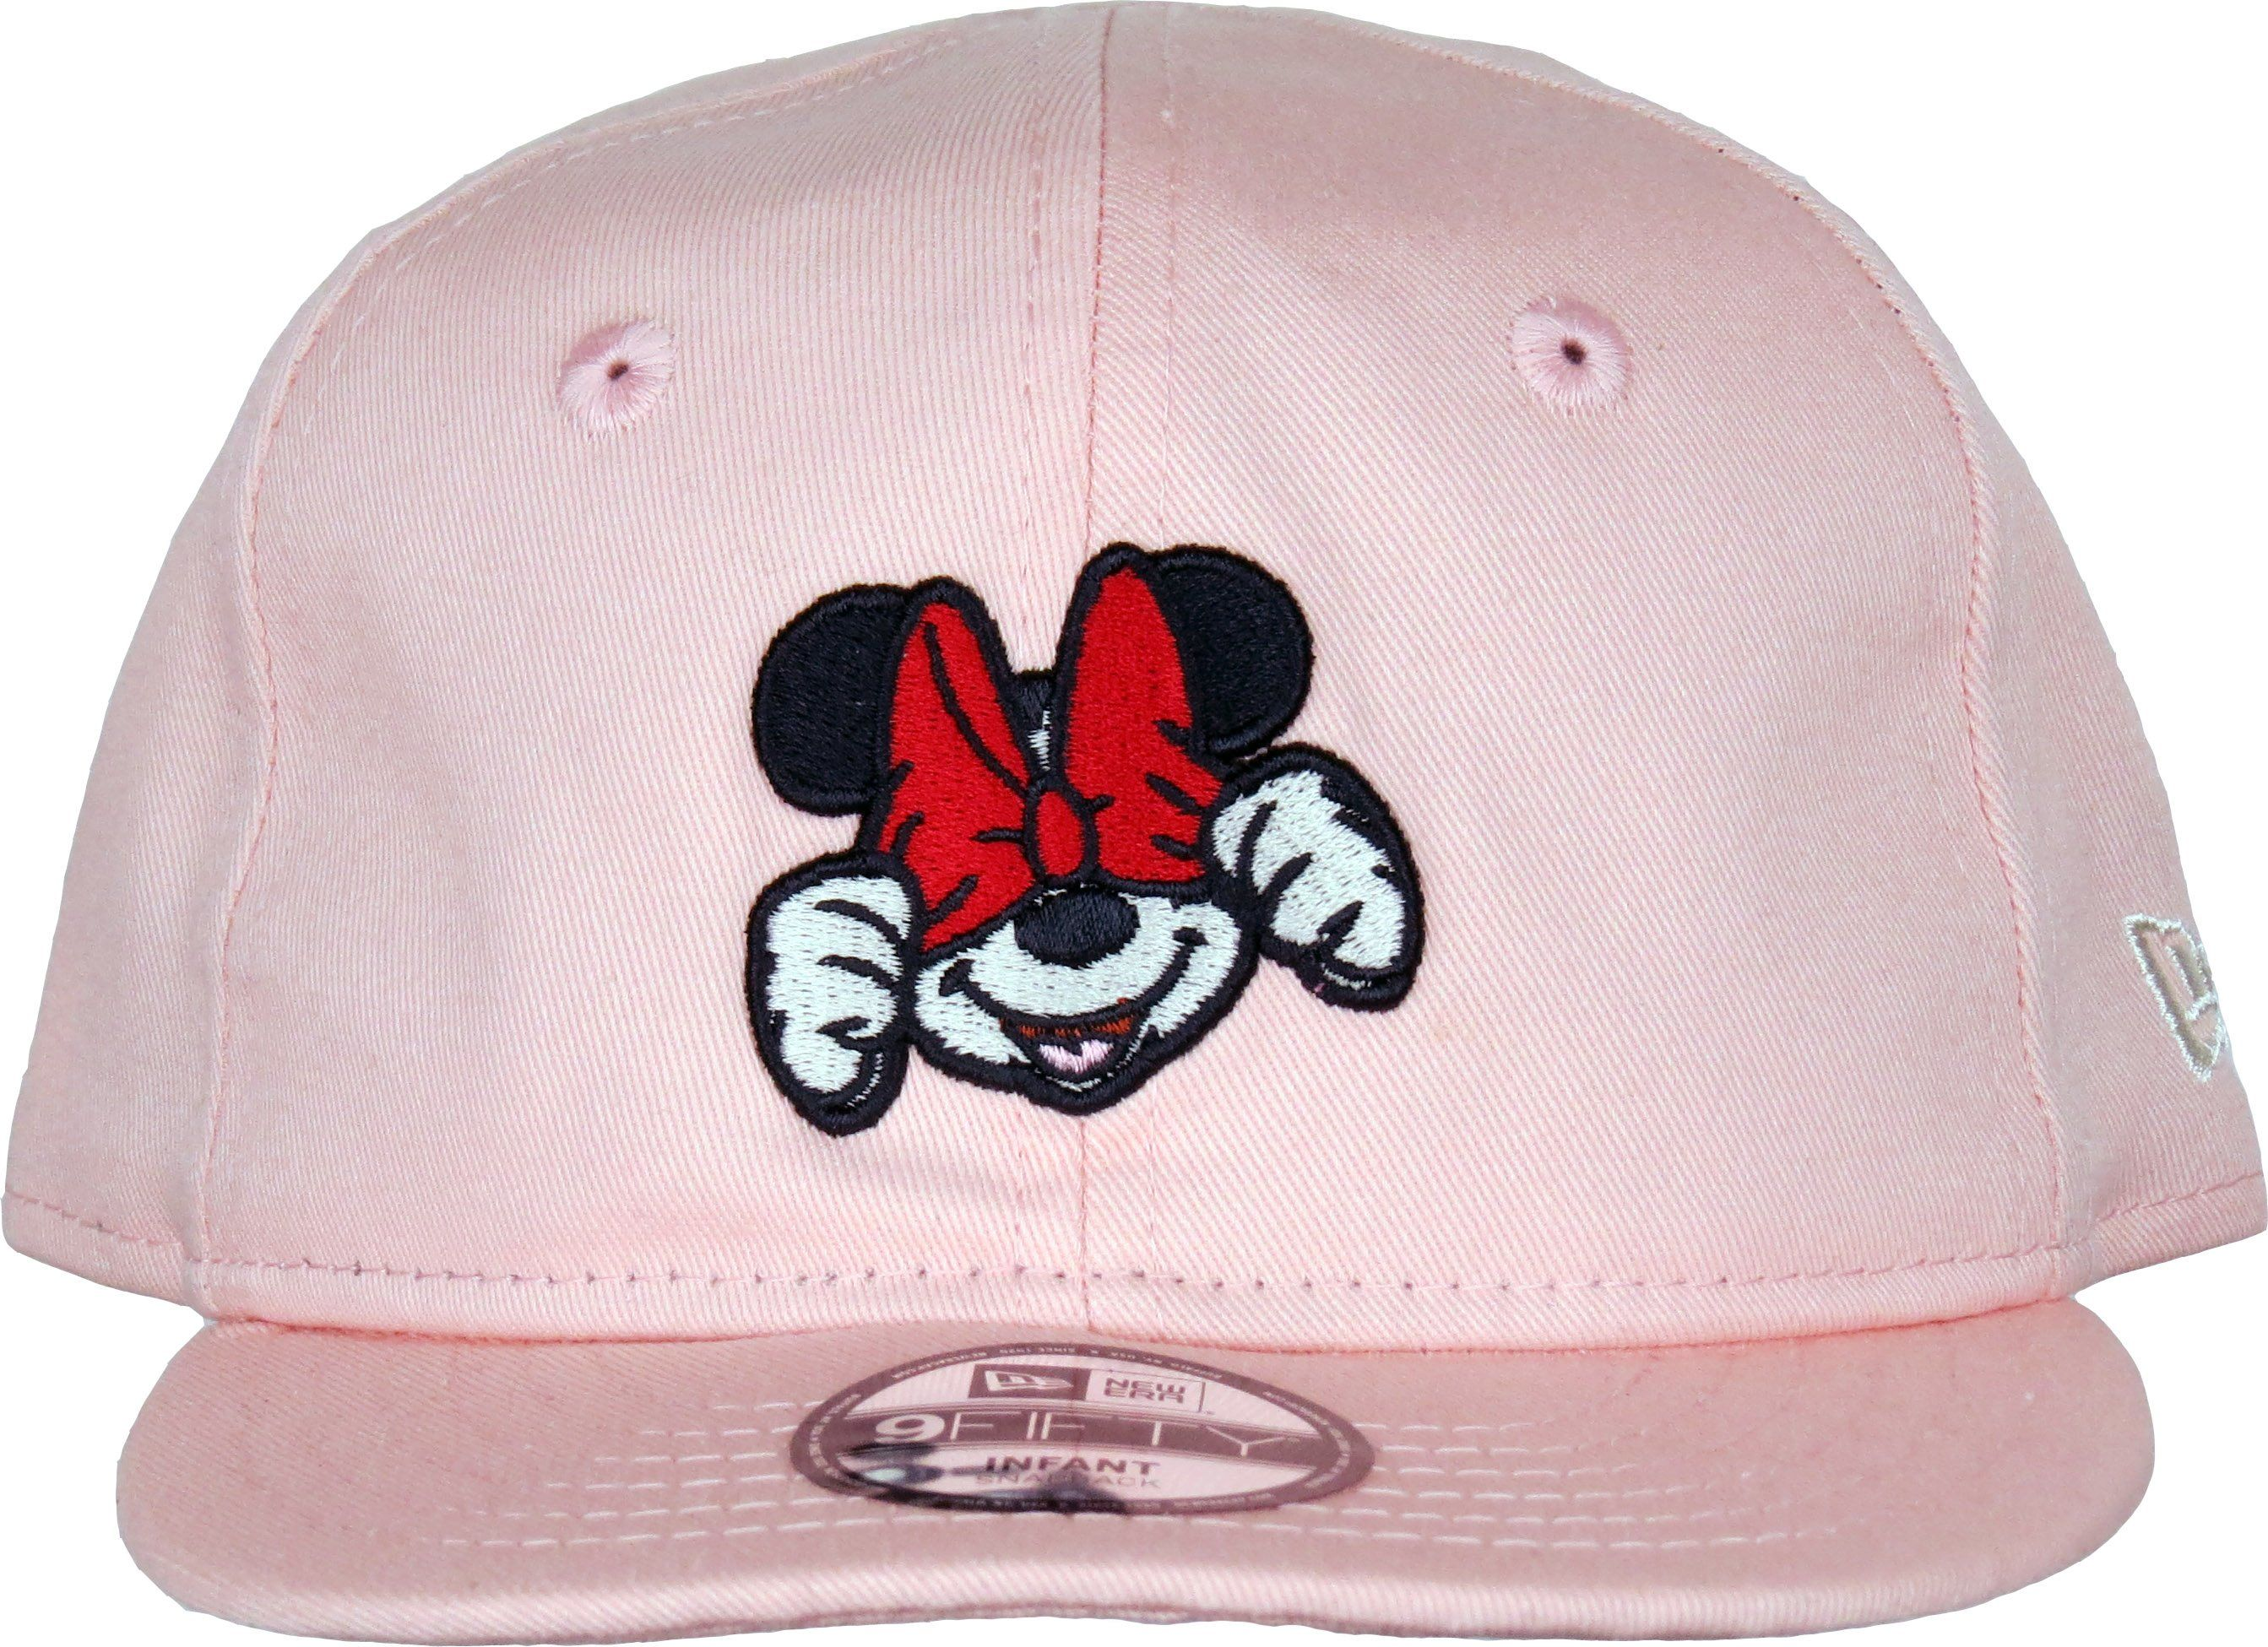 91a22f893d1 ... order new era 950 disney express infants snapback cap. pink with the minnie  mouse front